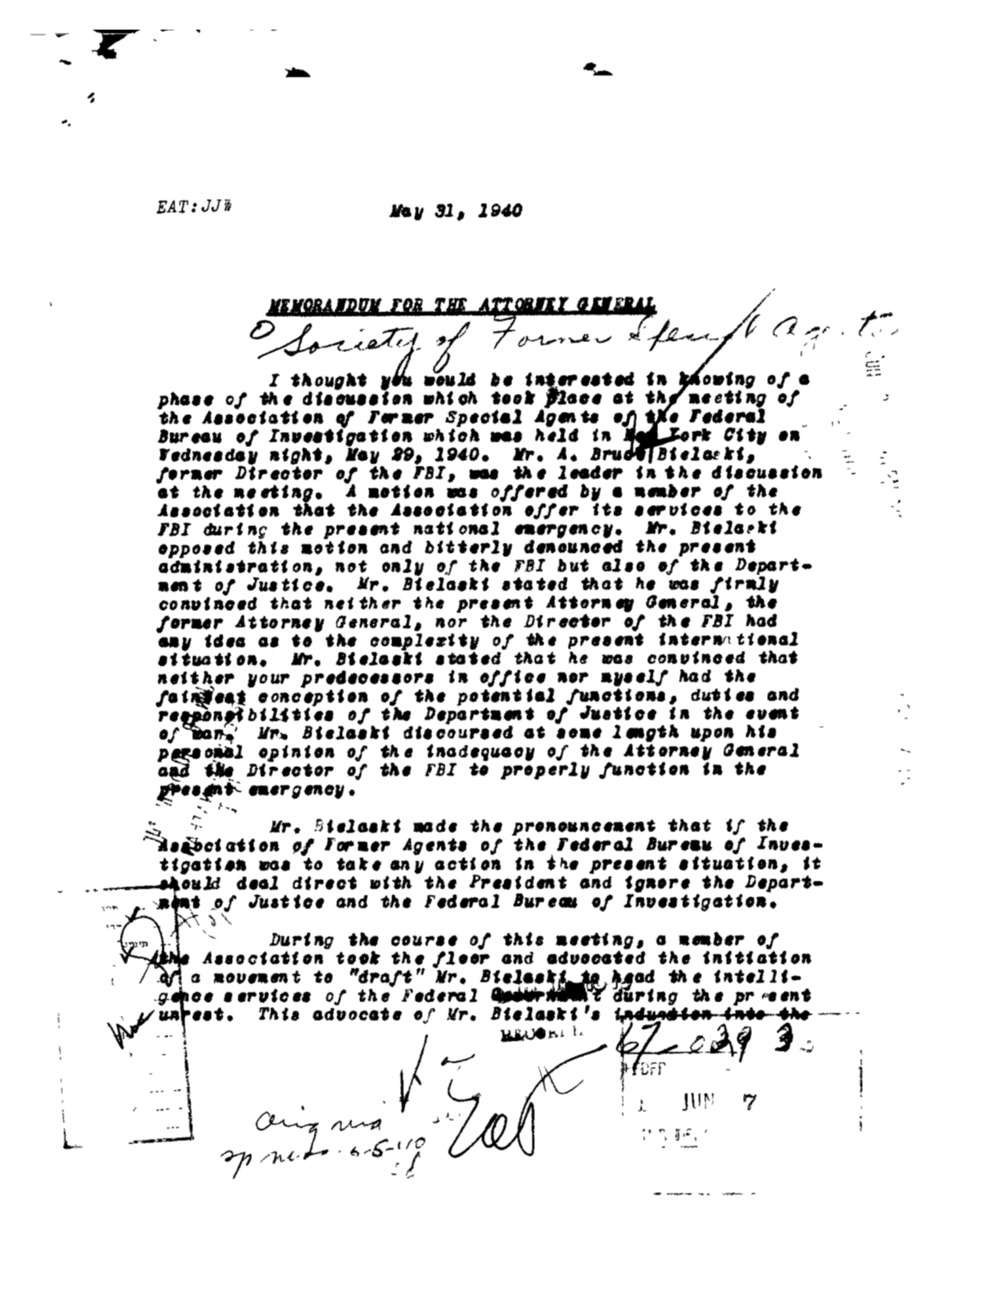 Director Hoover's letter to the Attorney General, 1940 revealing Bielaski's criticisms.